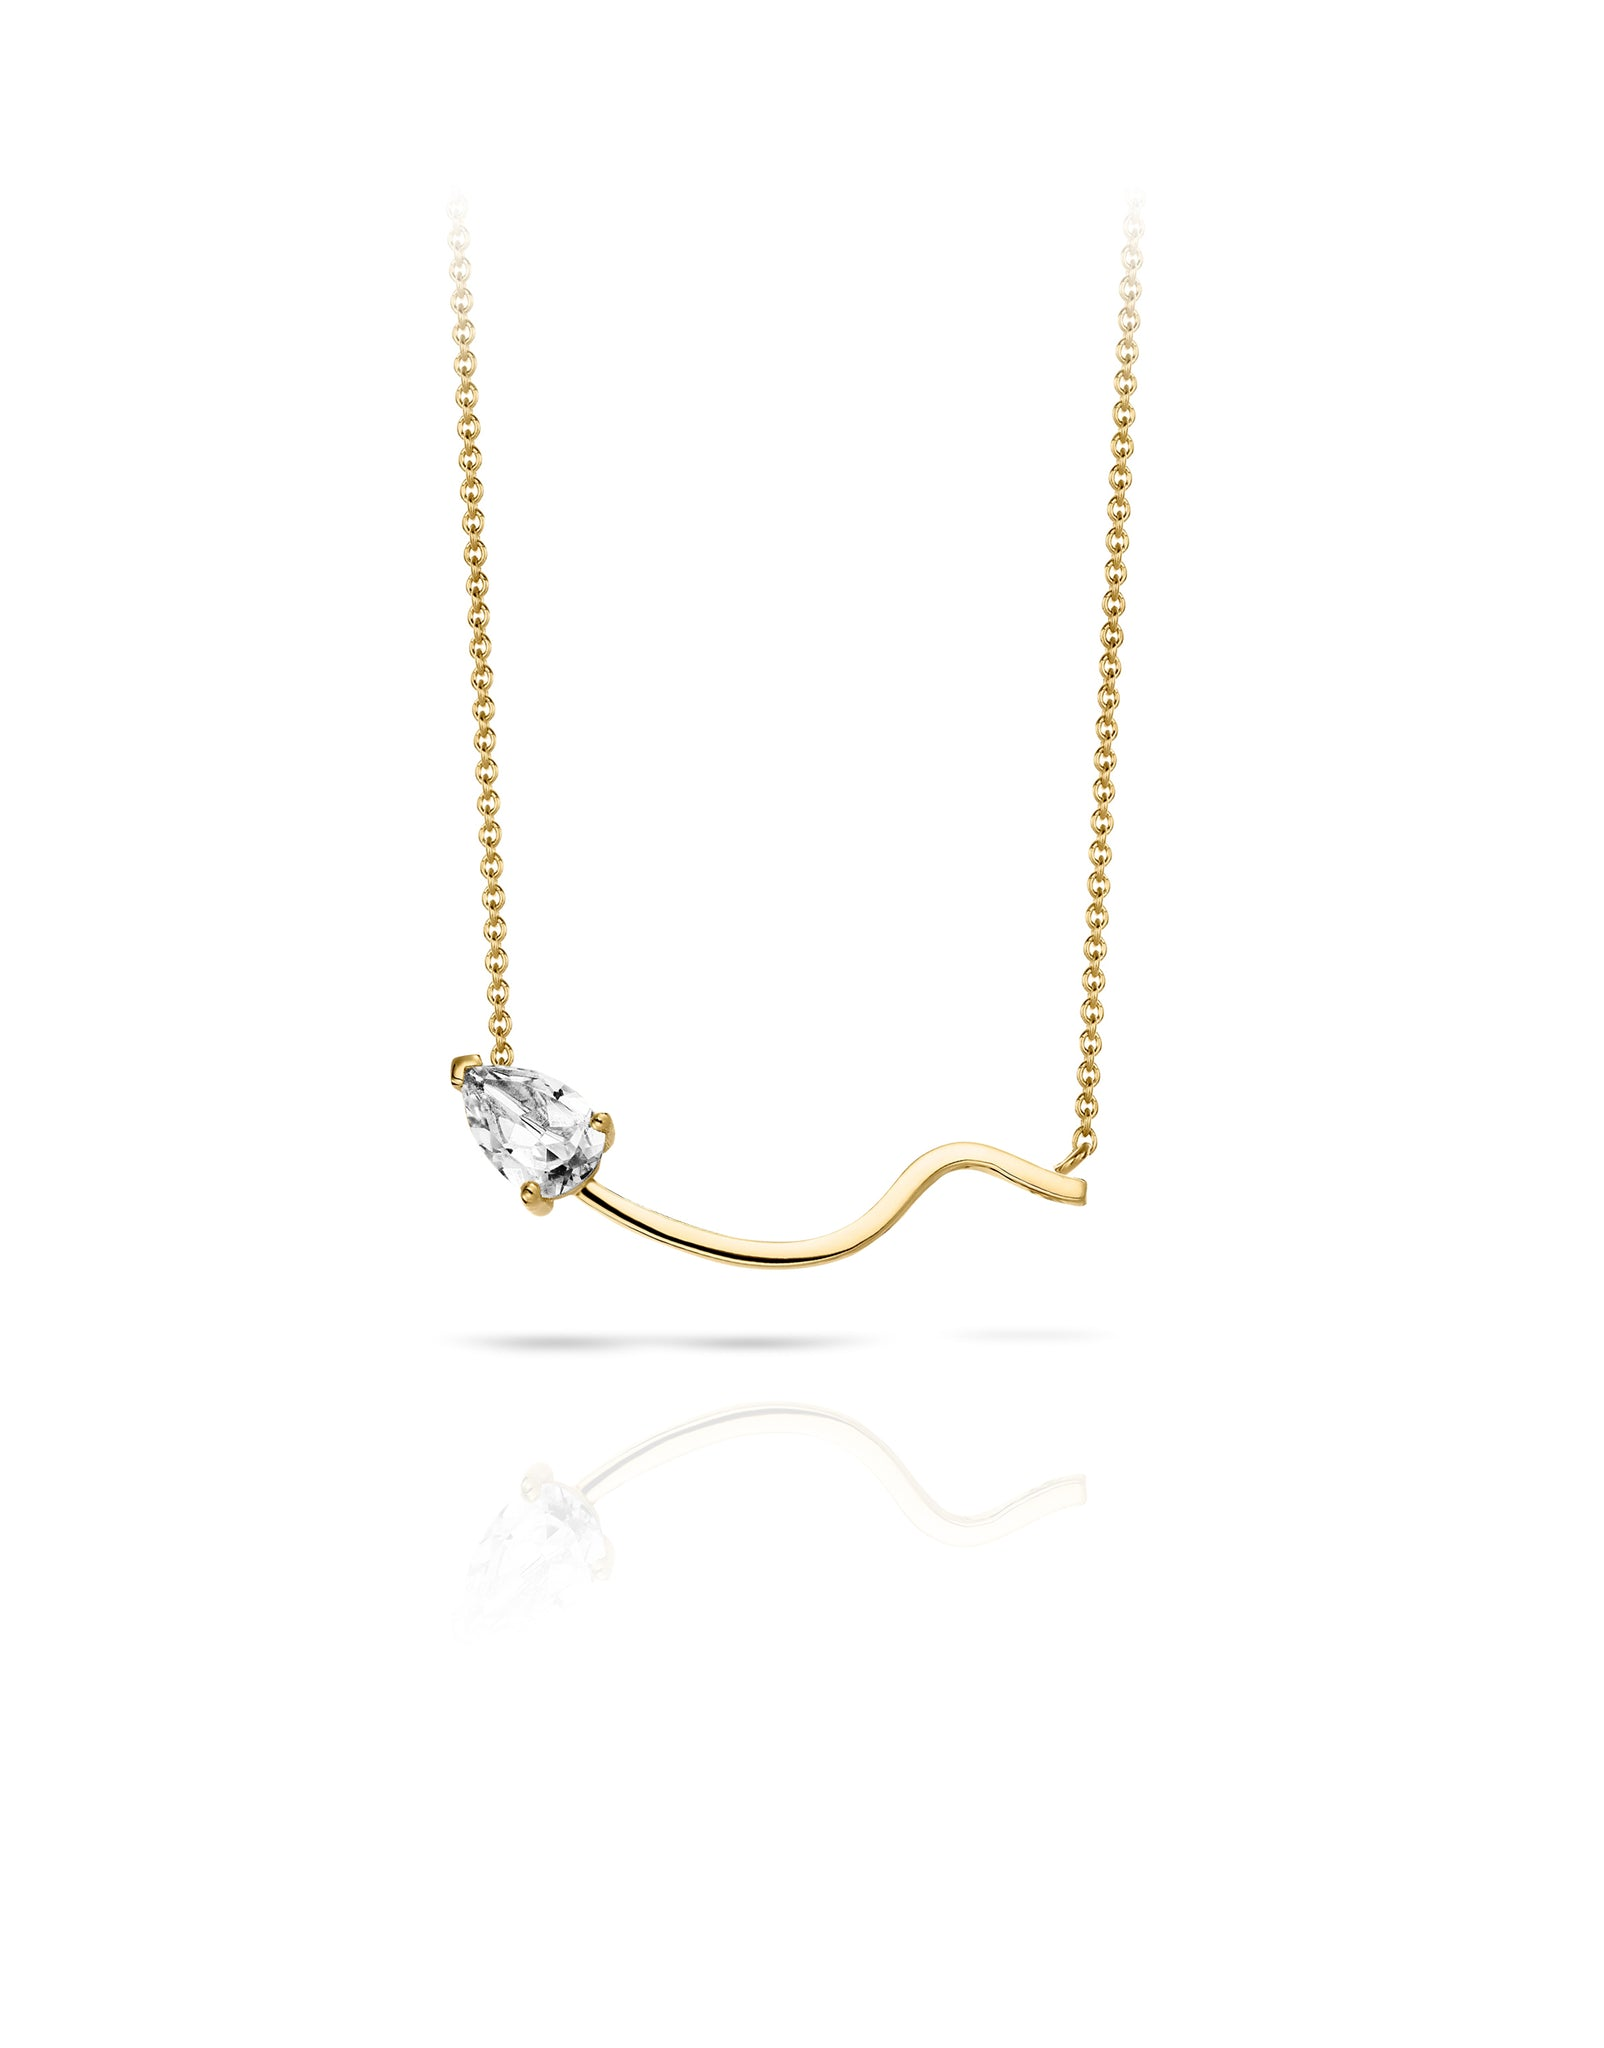 Necklace 18K gold white topaz - Lina topaz necklace - Nayestones